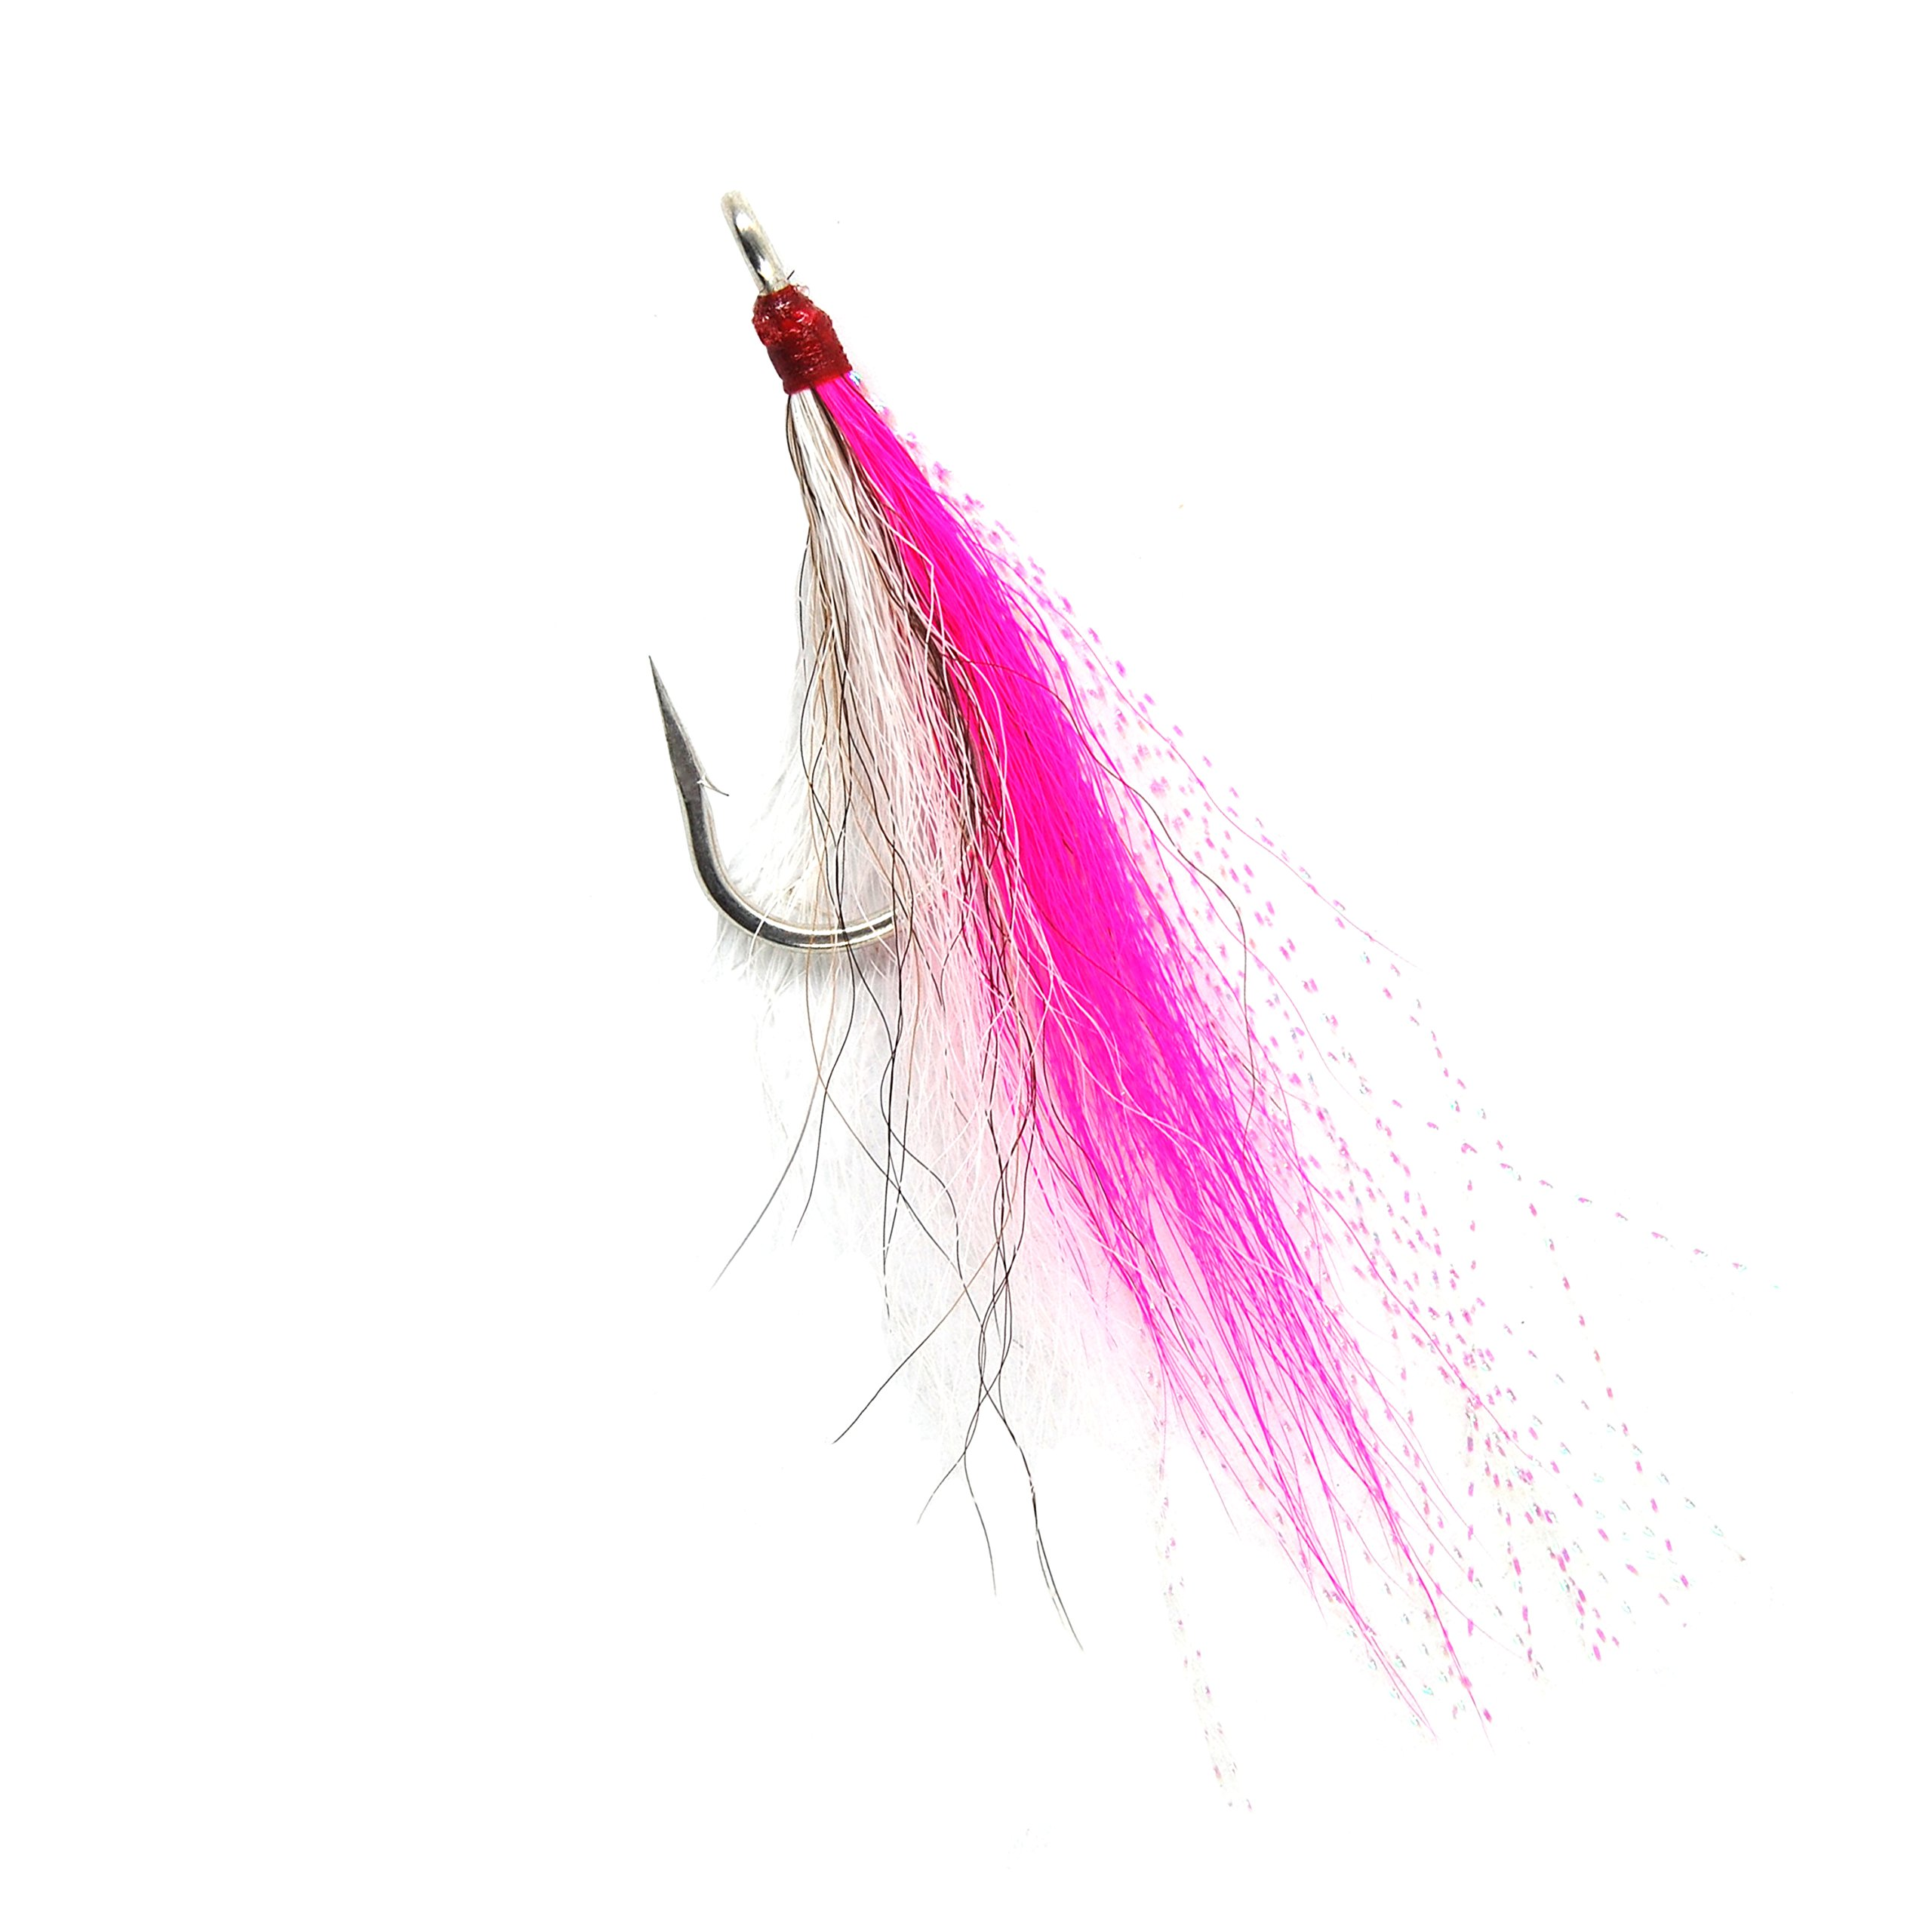 Shaddock Fishing Bucktail Teasers Fishing Hook Fluke Rig Saltwater Fishing jig Fishing Plugs Lures 6pcs (Pink) by Shaddock Fishing